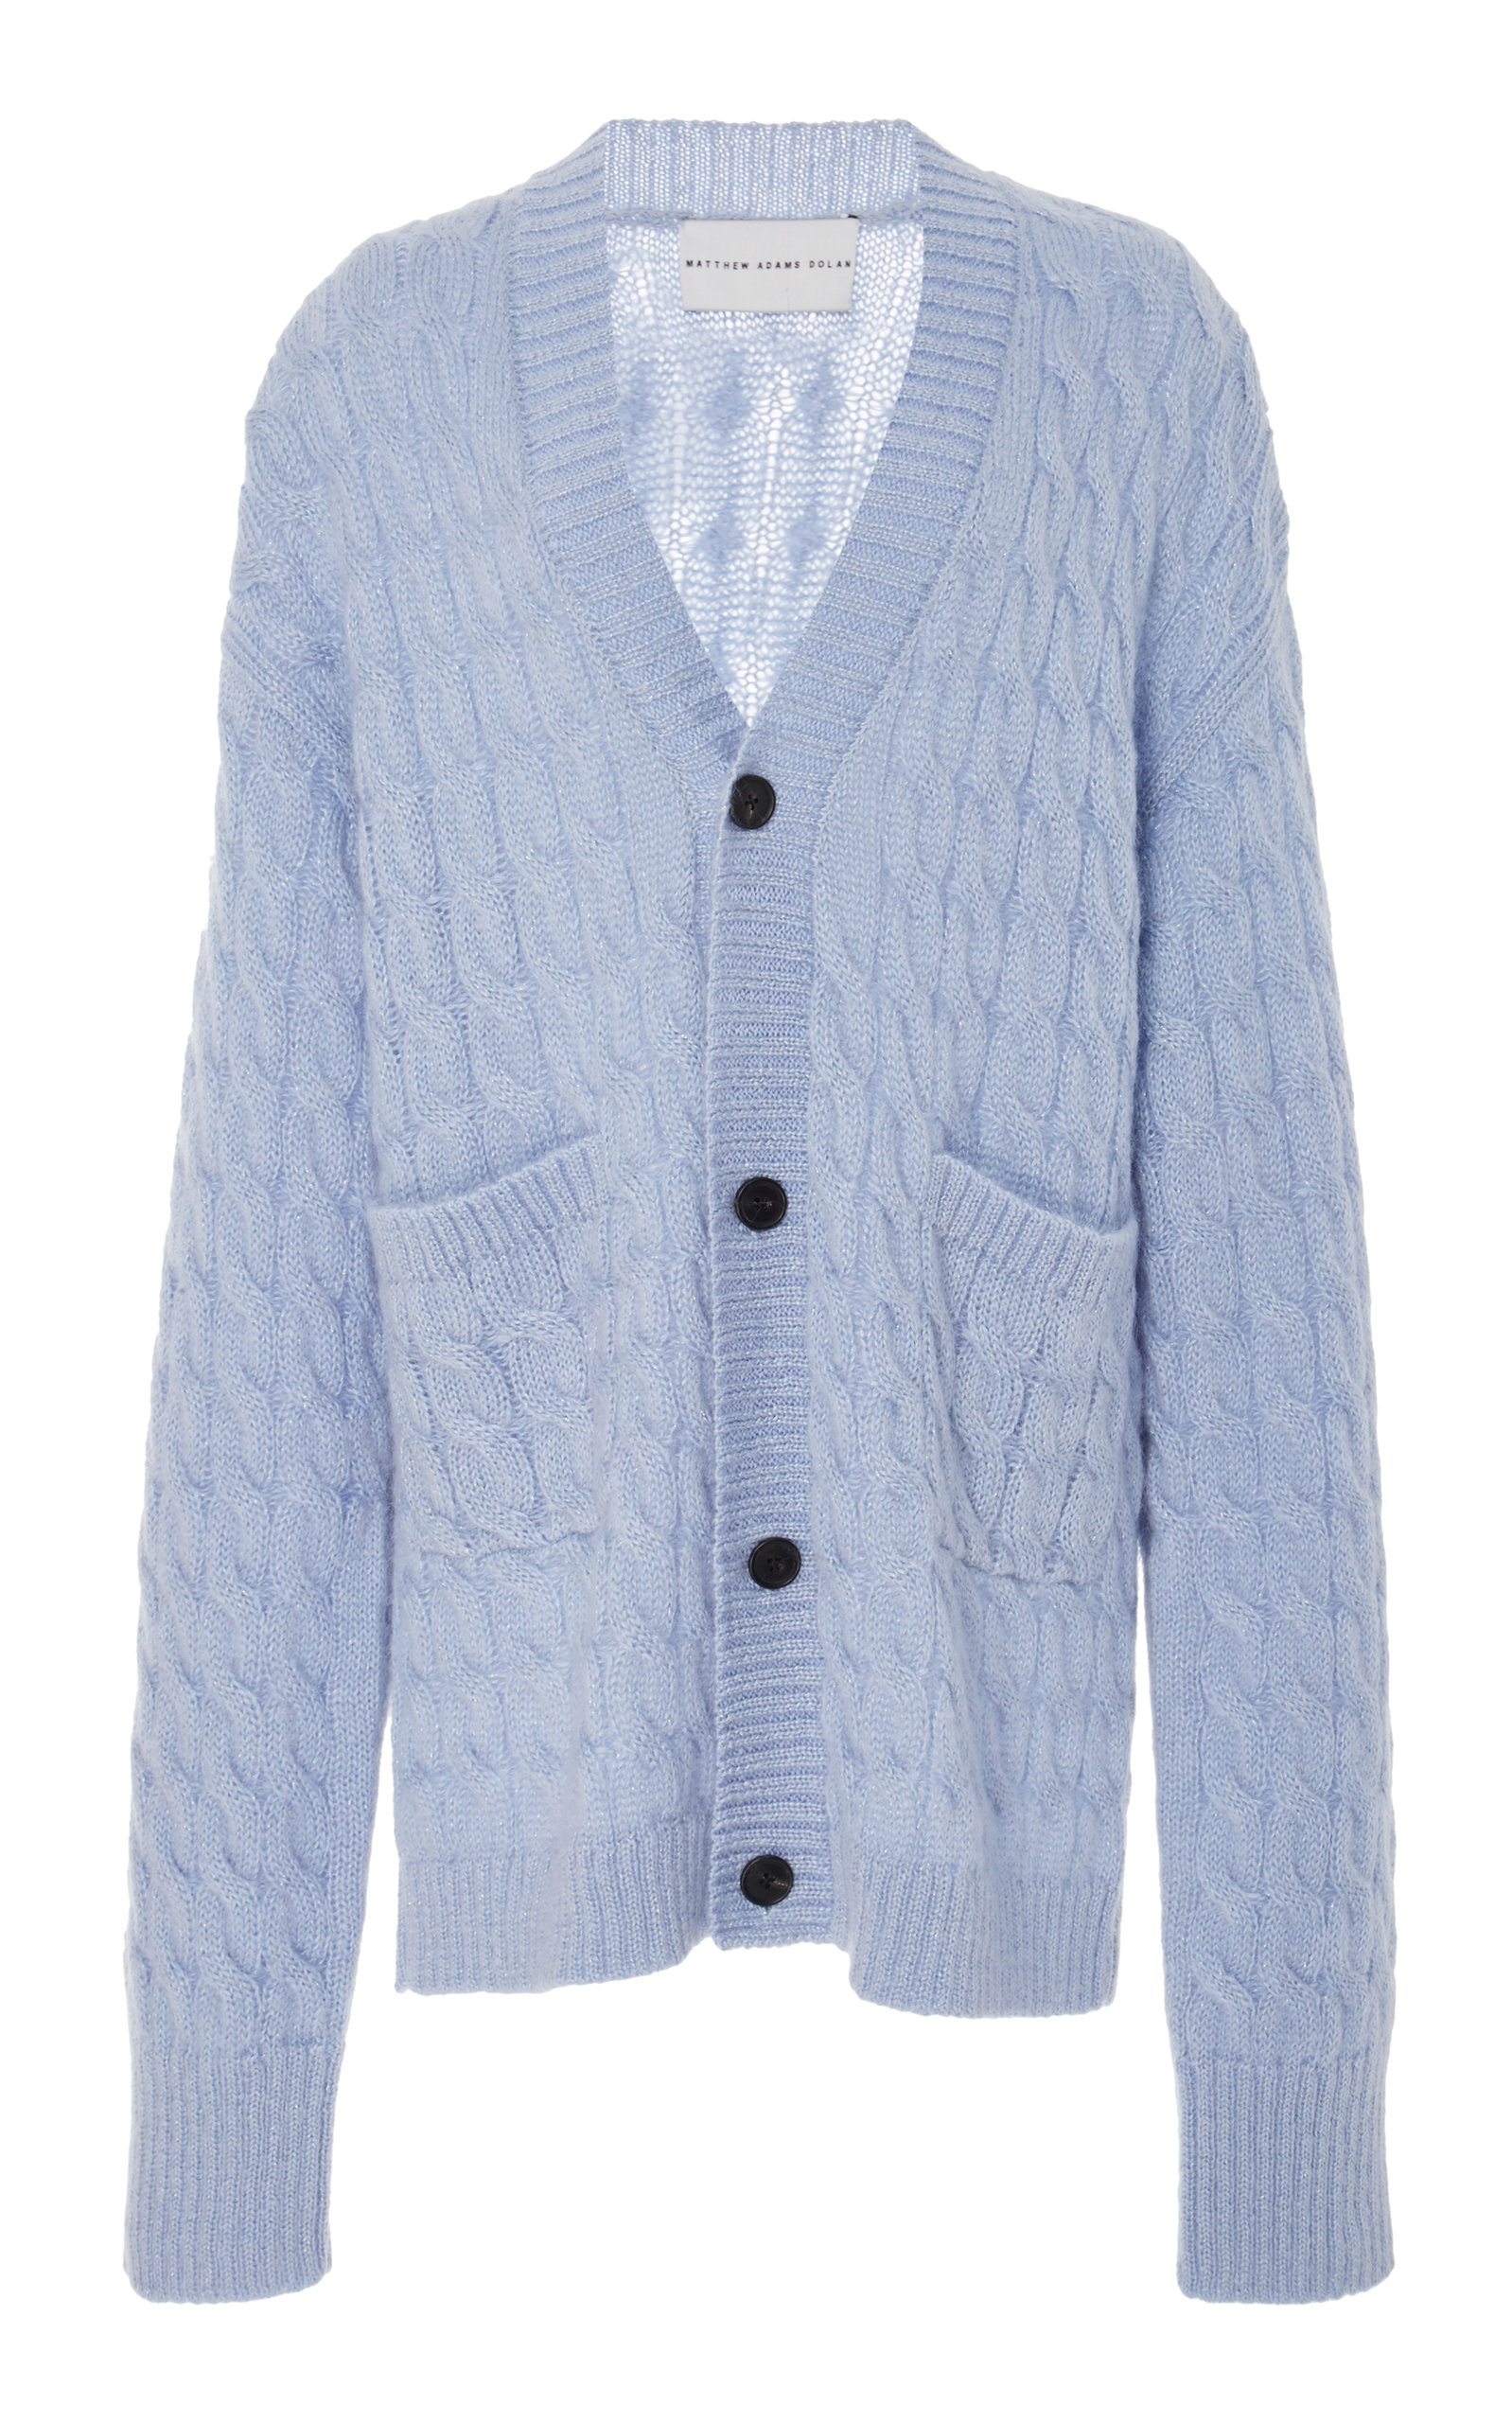 Matthew Adams Dolan MOHAIR-BLEND CABLE-KNIT CARDIGAN